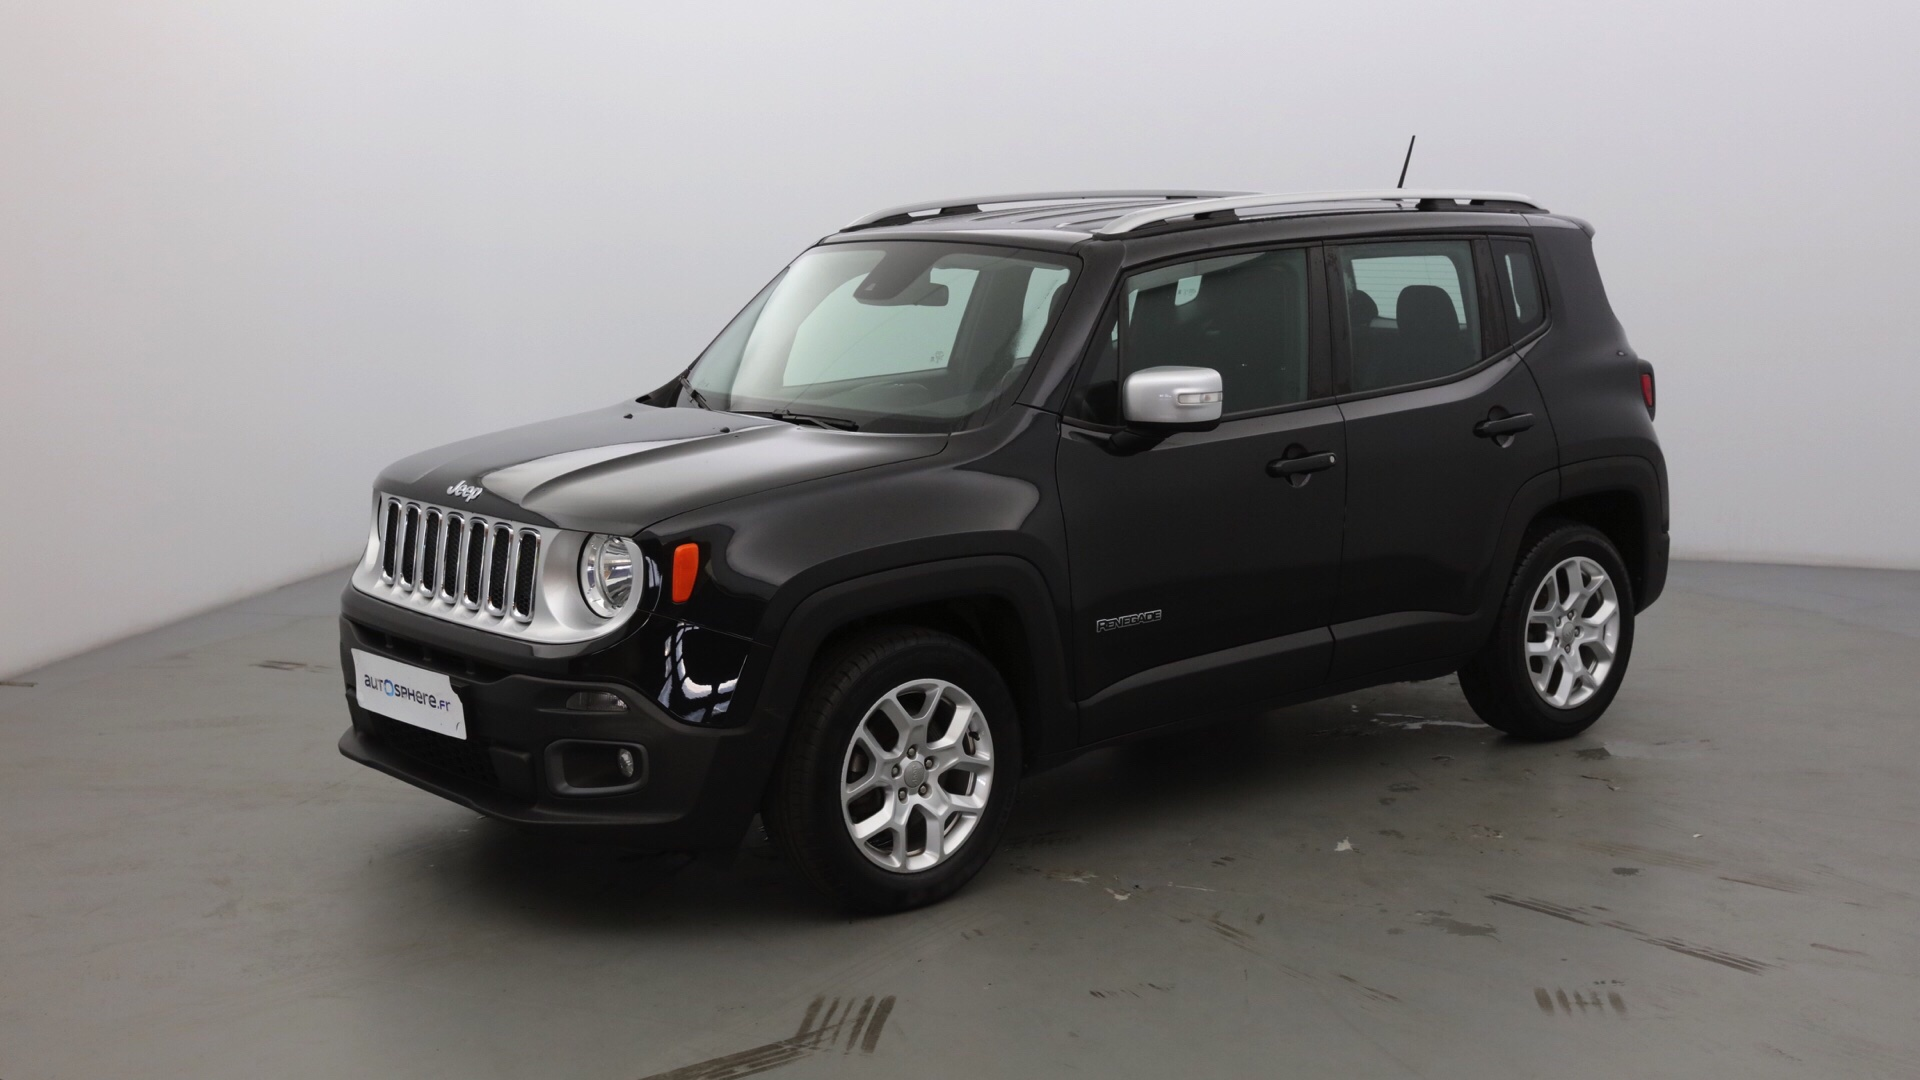 JEEP RENEGADE 1.4 MULTIAIR S&S 140CH LIMITED BVRD6 - Photo 1